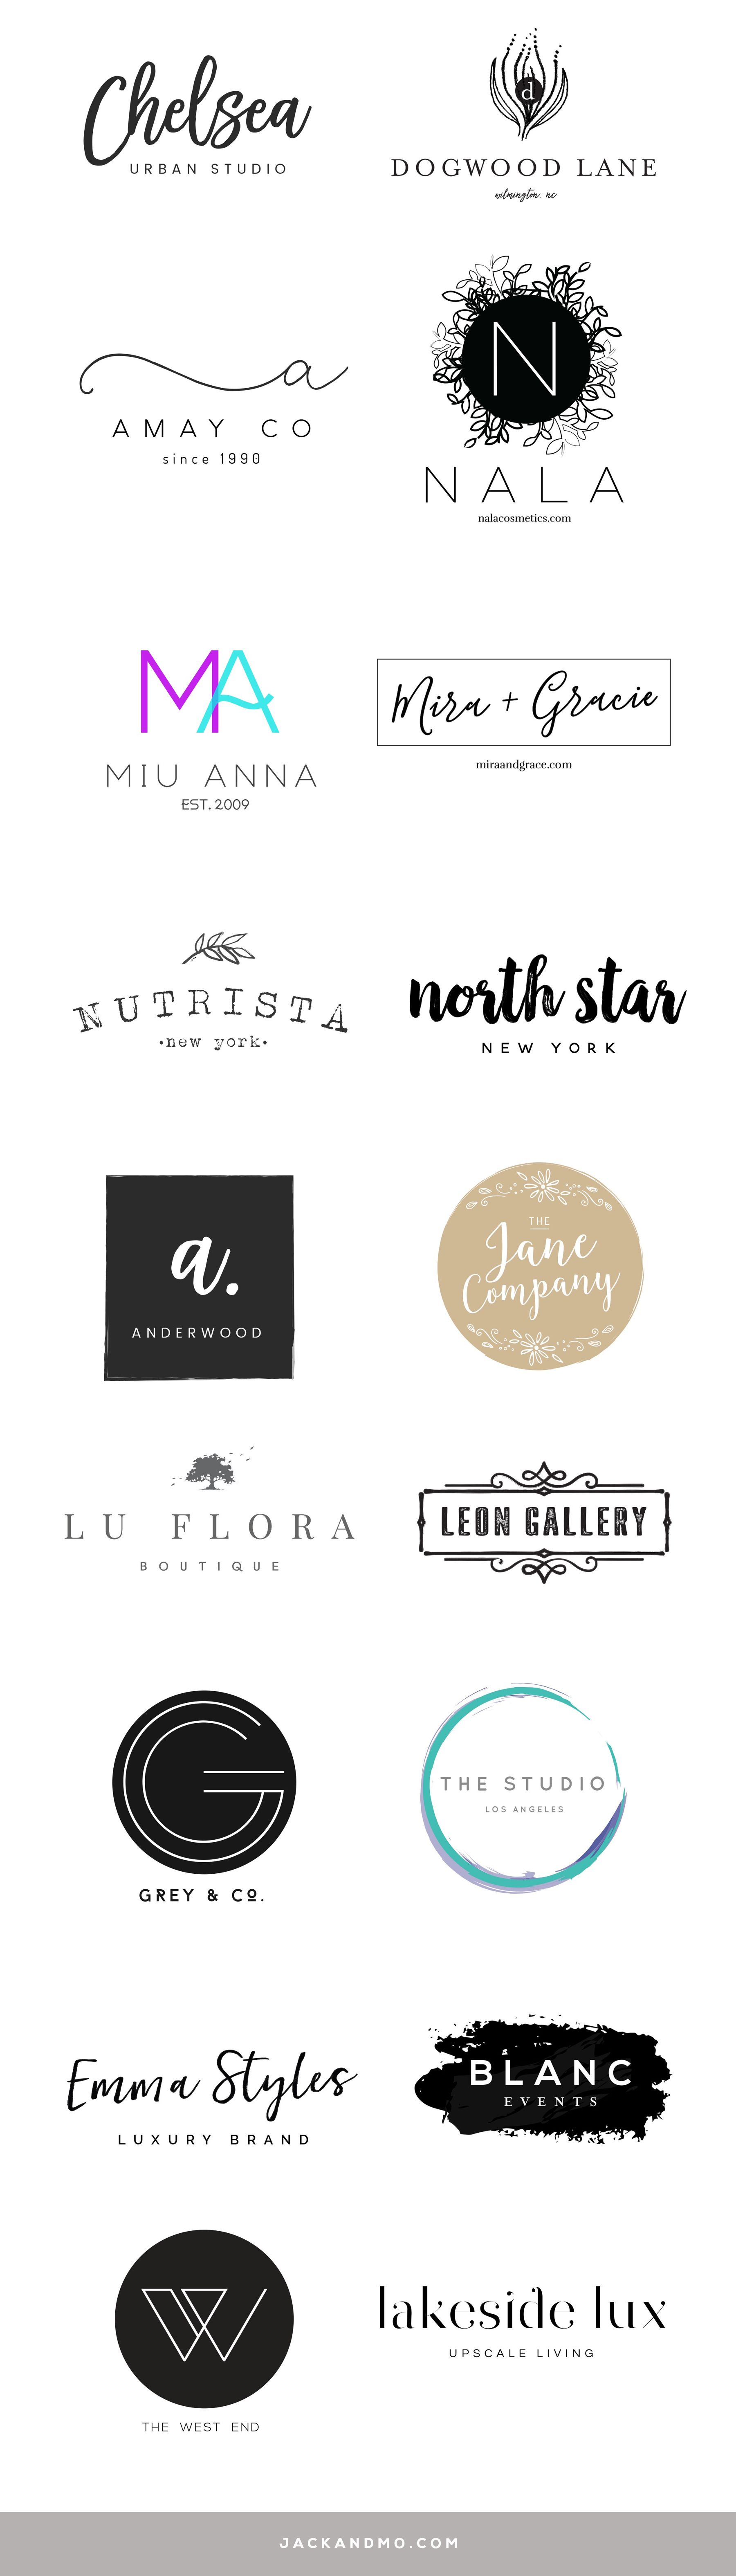 Modern Minimalist Pre Made Logo Designs So Easy To Customize